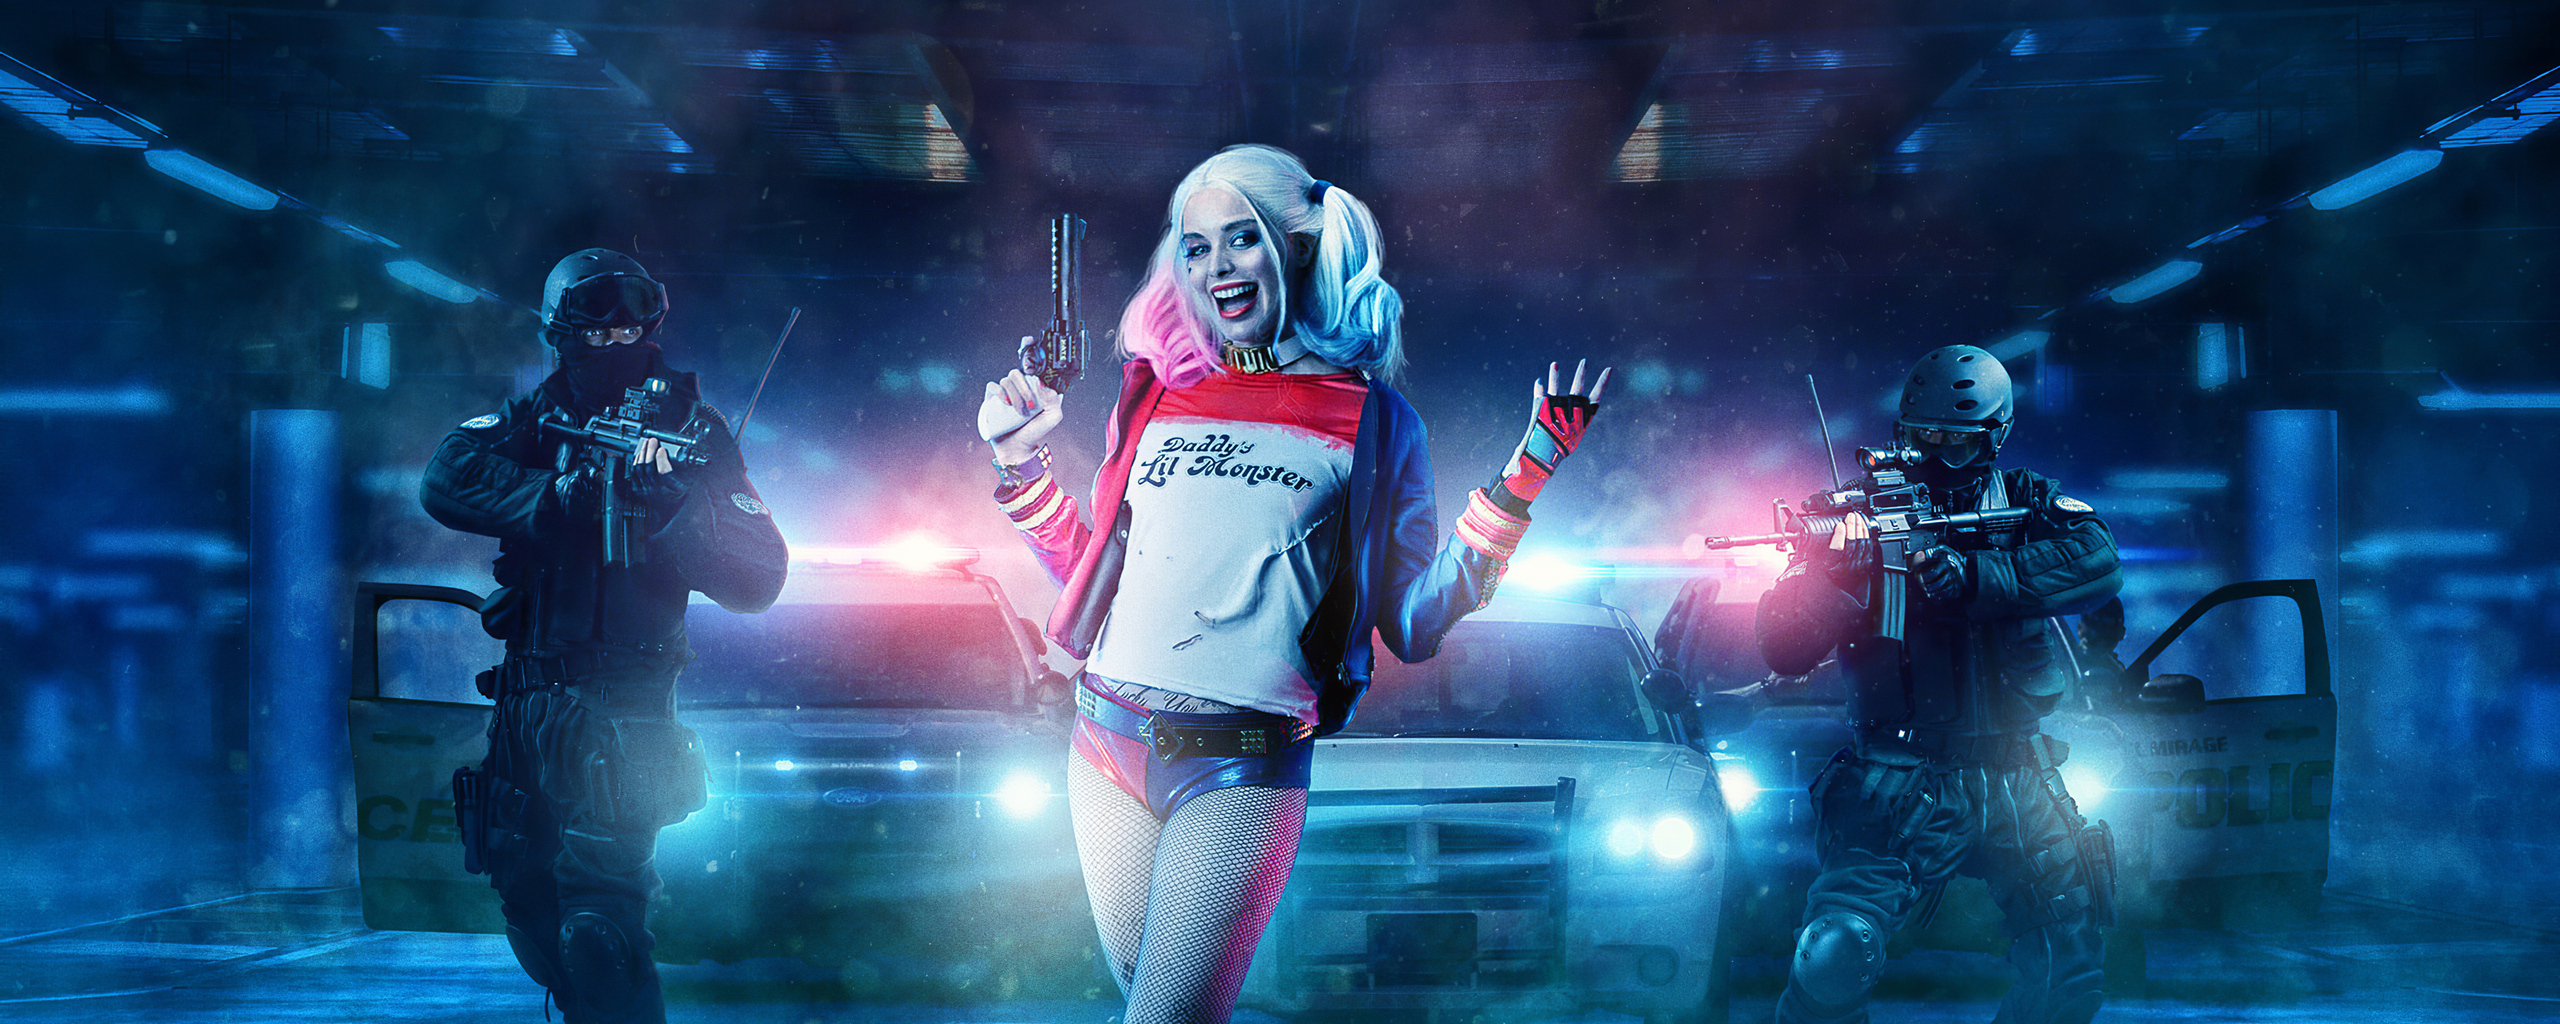 harley-quinn-under-arrest-xh.jpg